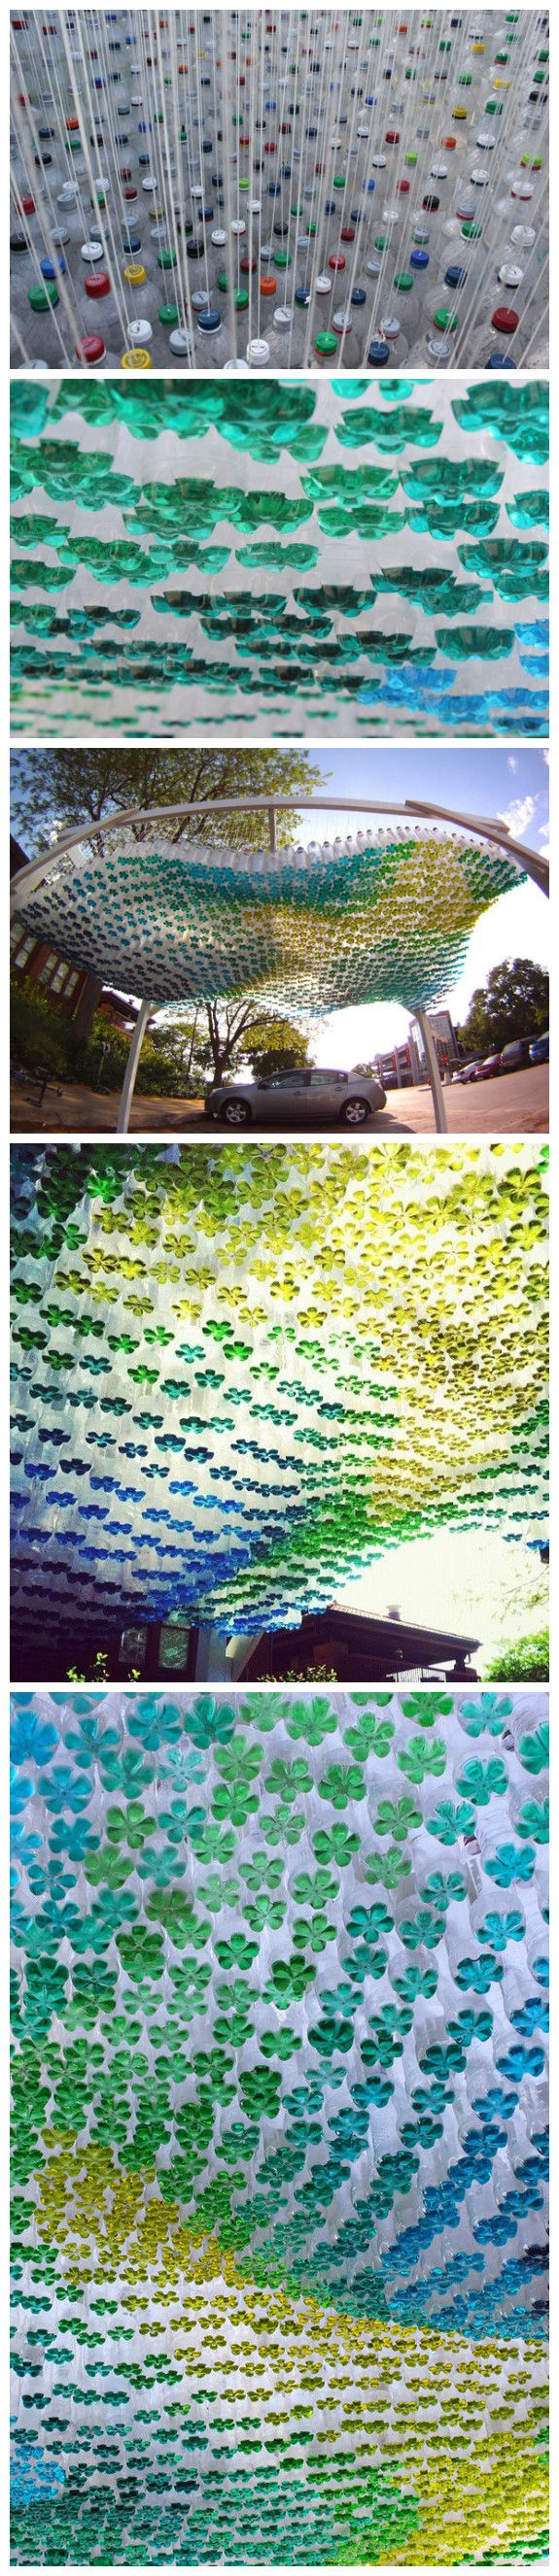 Using thousands of soft drink bottles which have then had the base filled with coloured water makes this stunning piece of art work.